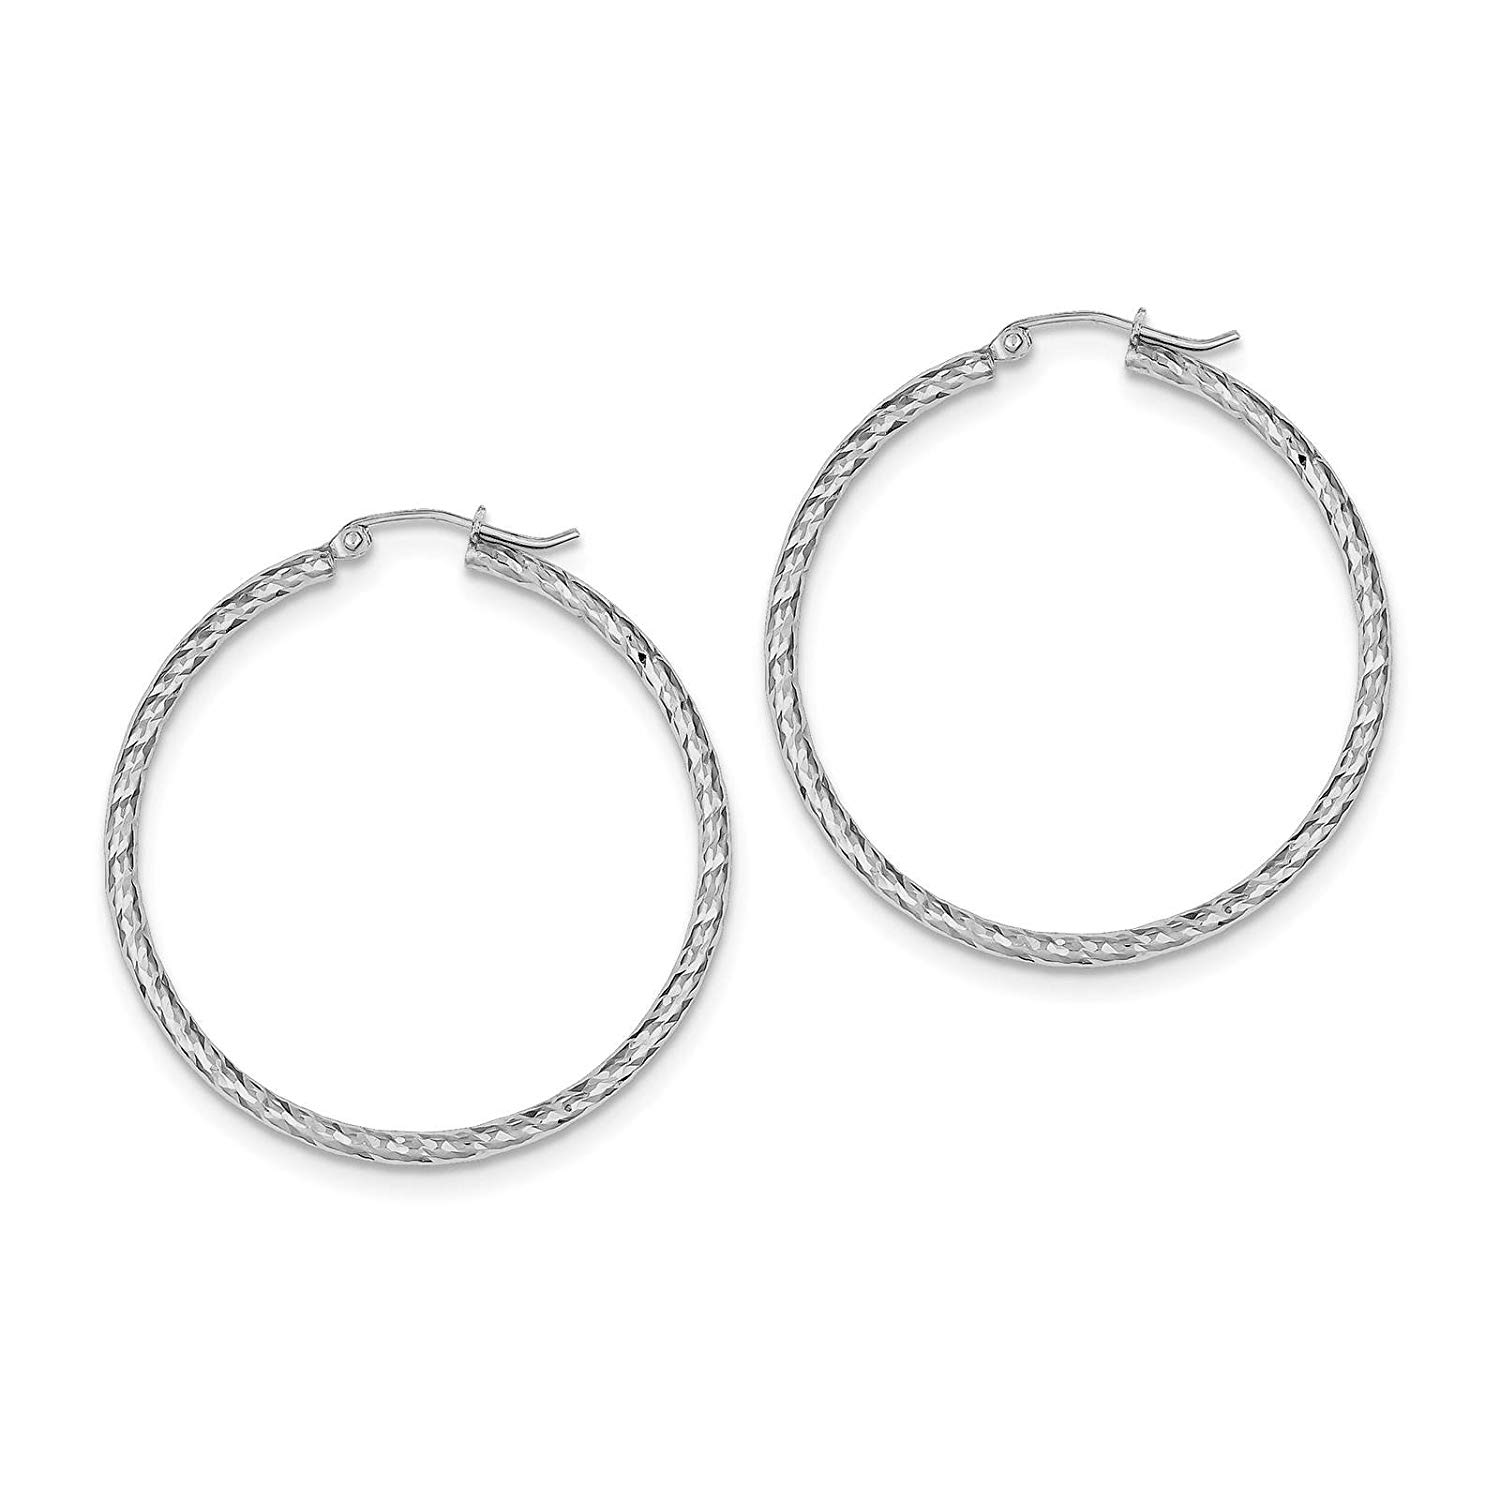 .925 Sterling Silver Rhodium-plated Polished & Diamond-cut Round Hoop Earrings 2mm x 39mm